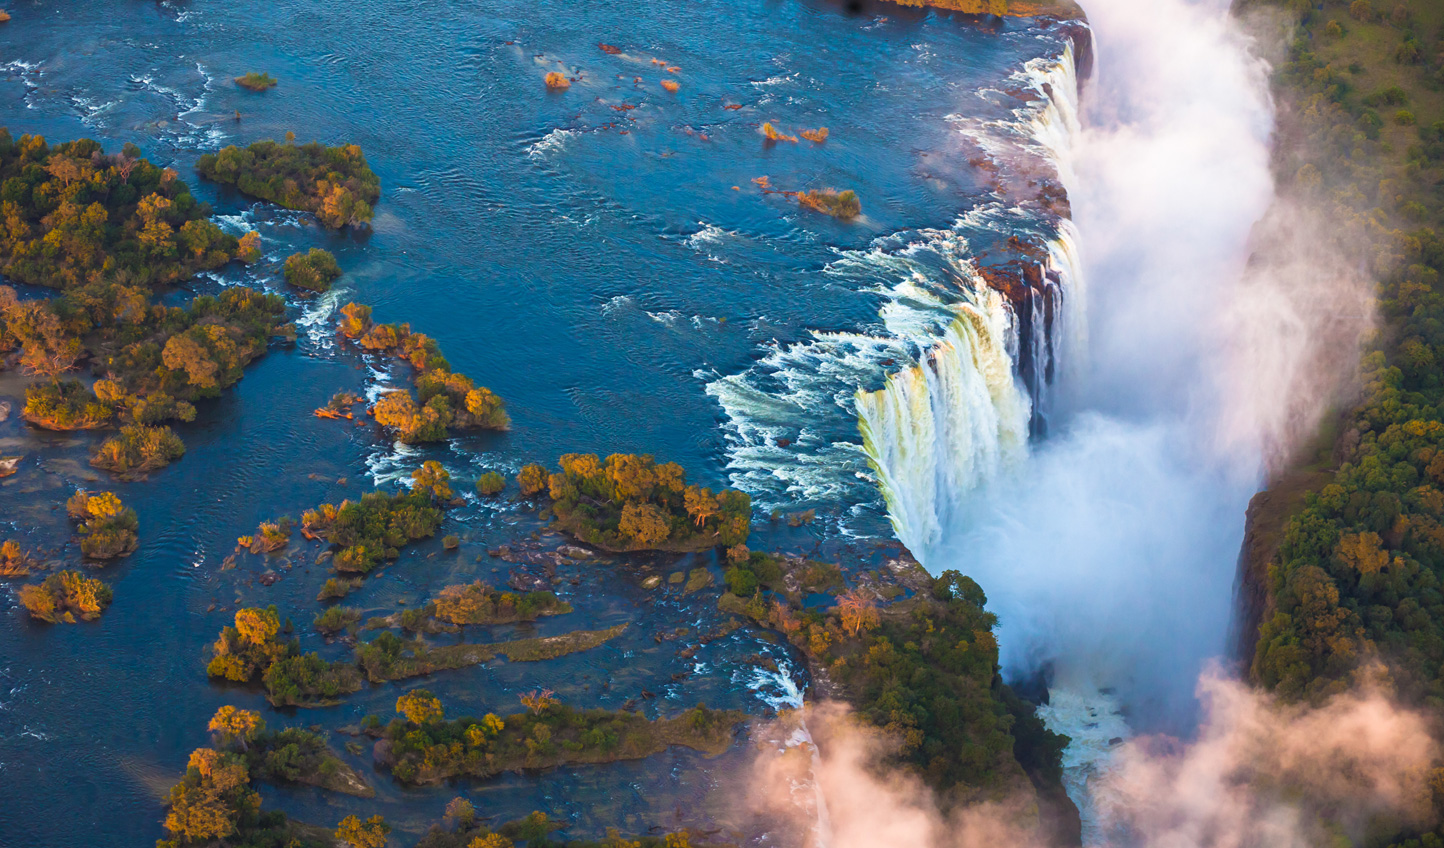 Take a helicopter ride over the mighty Victoria Falls